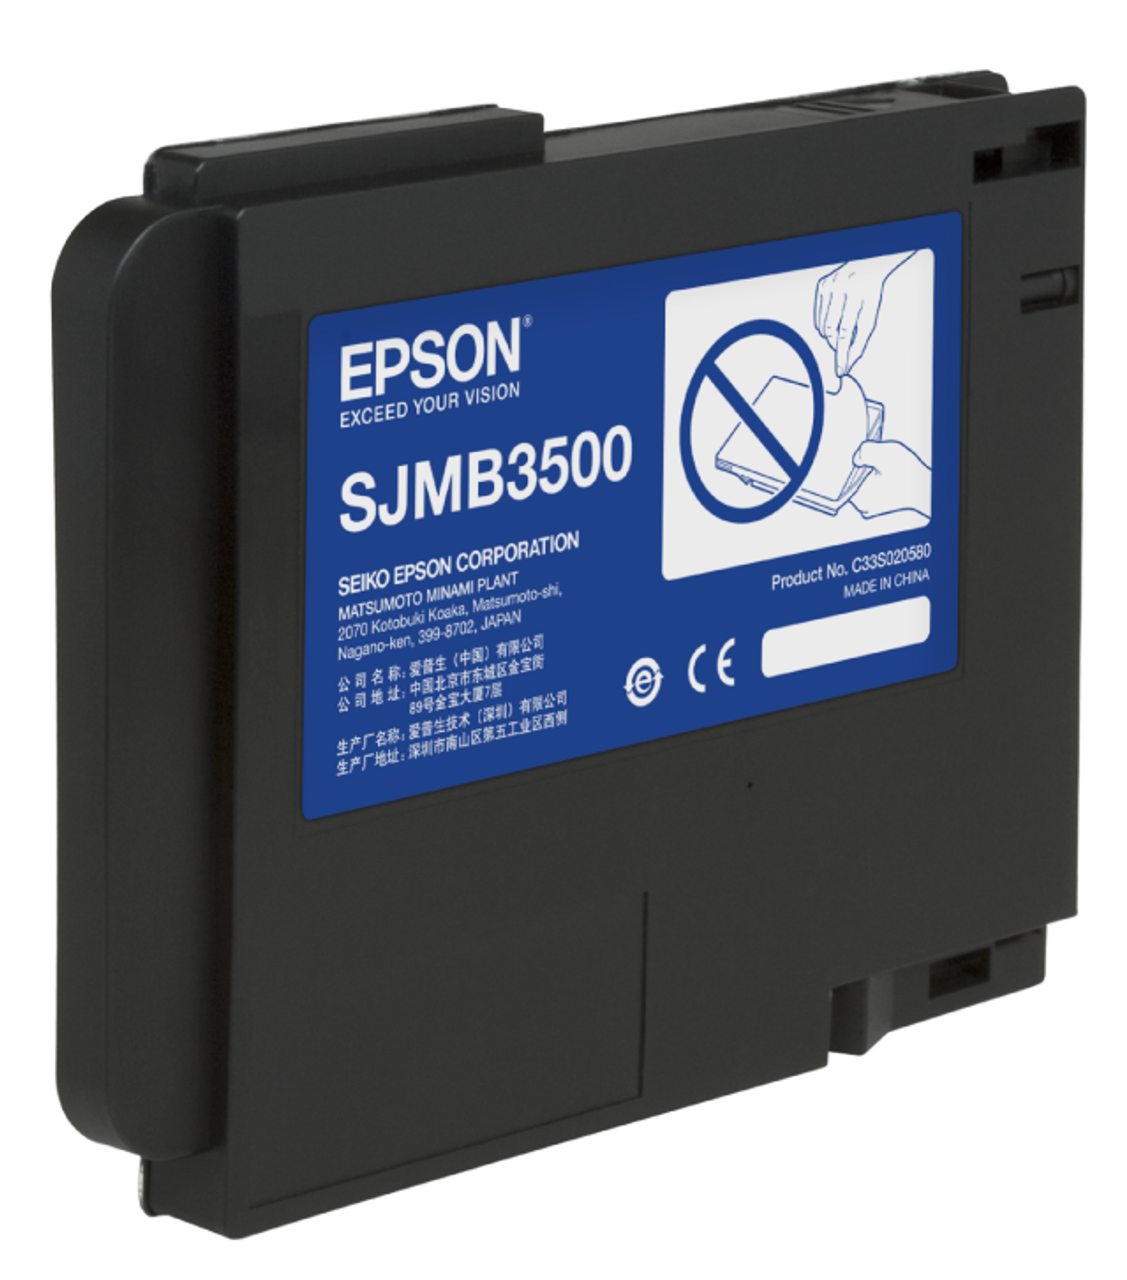 Epson TM-C3500 Label Printer Maintenance Box